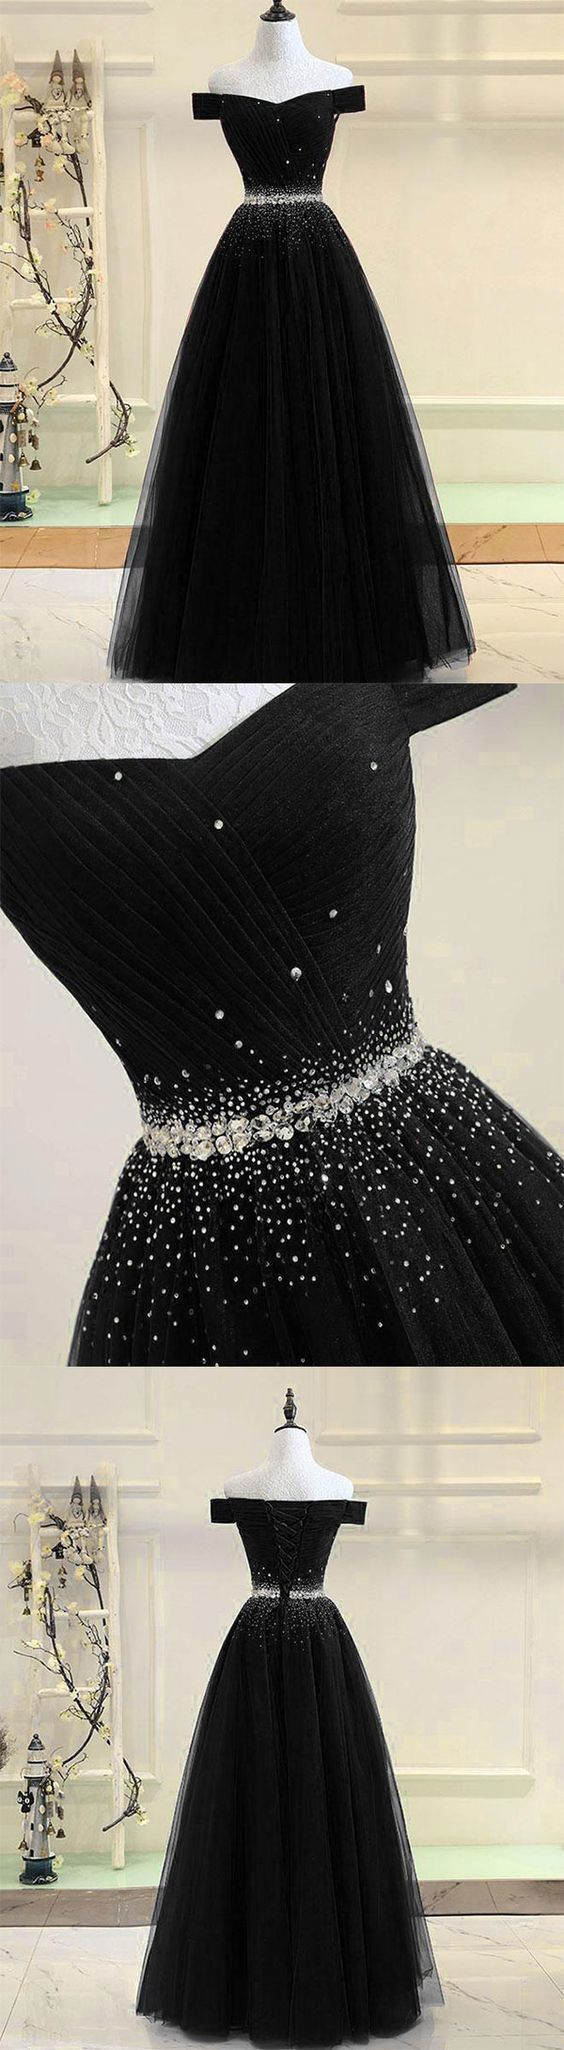 Custom Made A Line Prom Dresses, Black Tulle Long Evening Dress